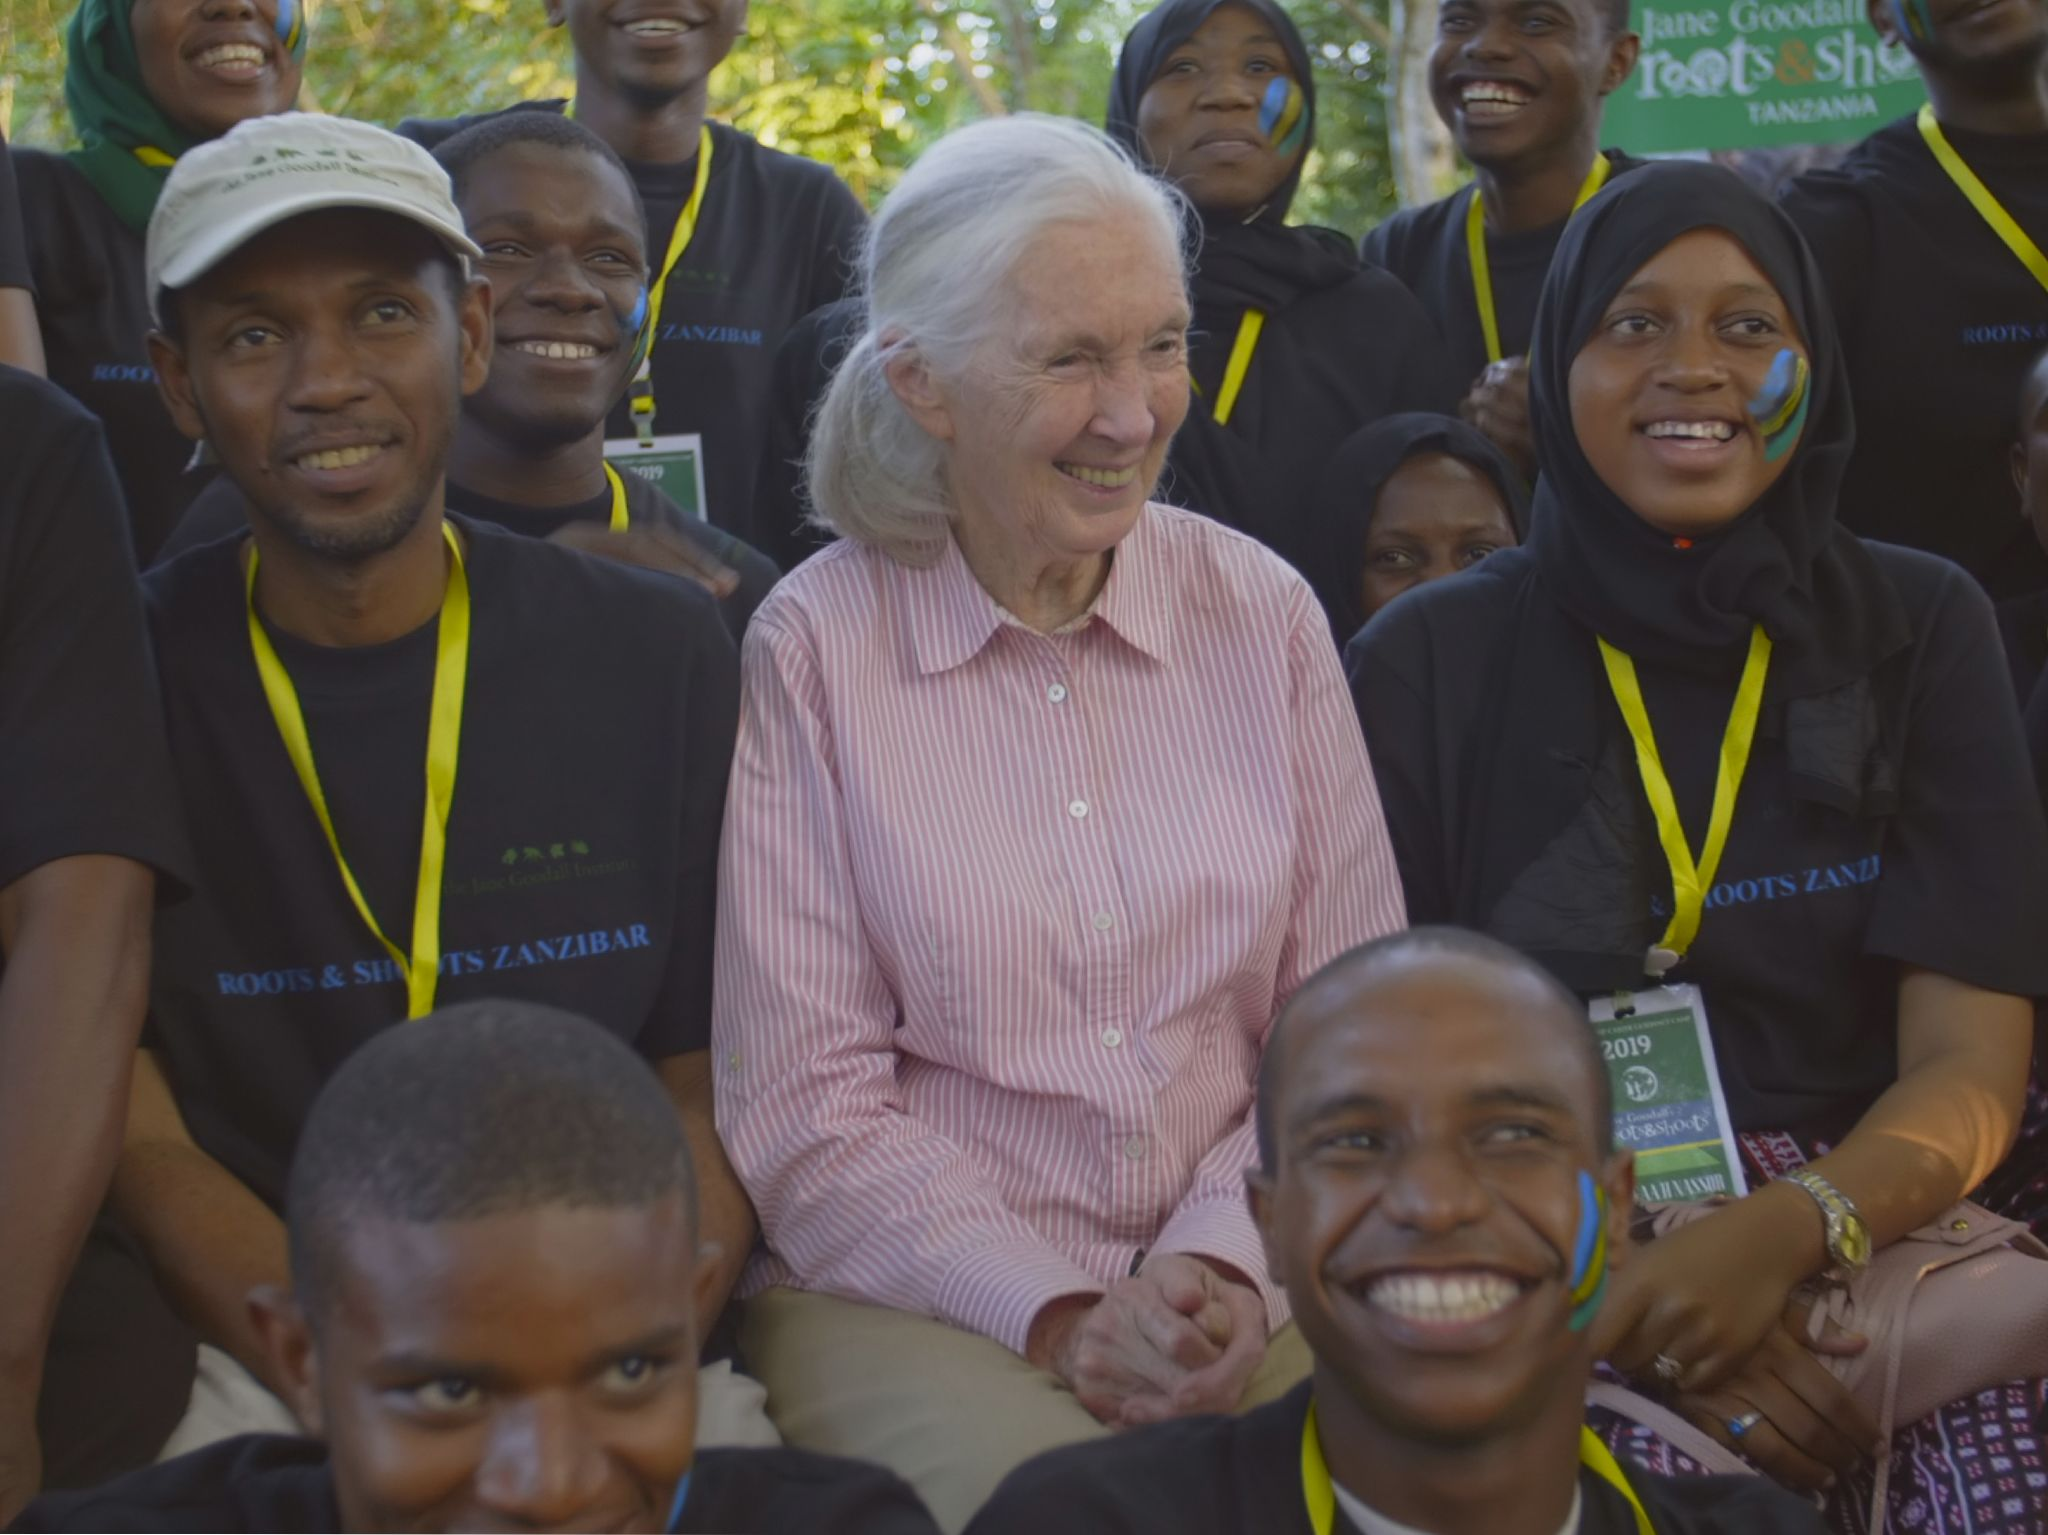 Dr. Jane Goodall posing with members of Roots & Shoots, a program of the Jane Goodall Institute.... [Photo of the day - April 2020]